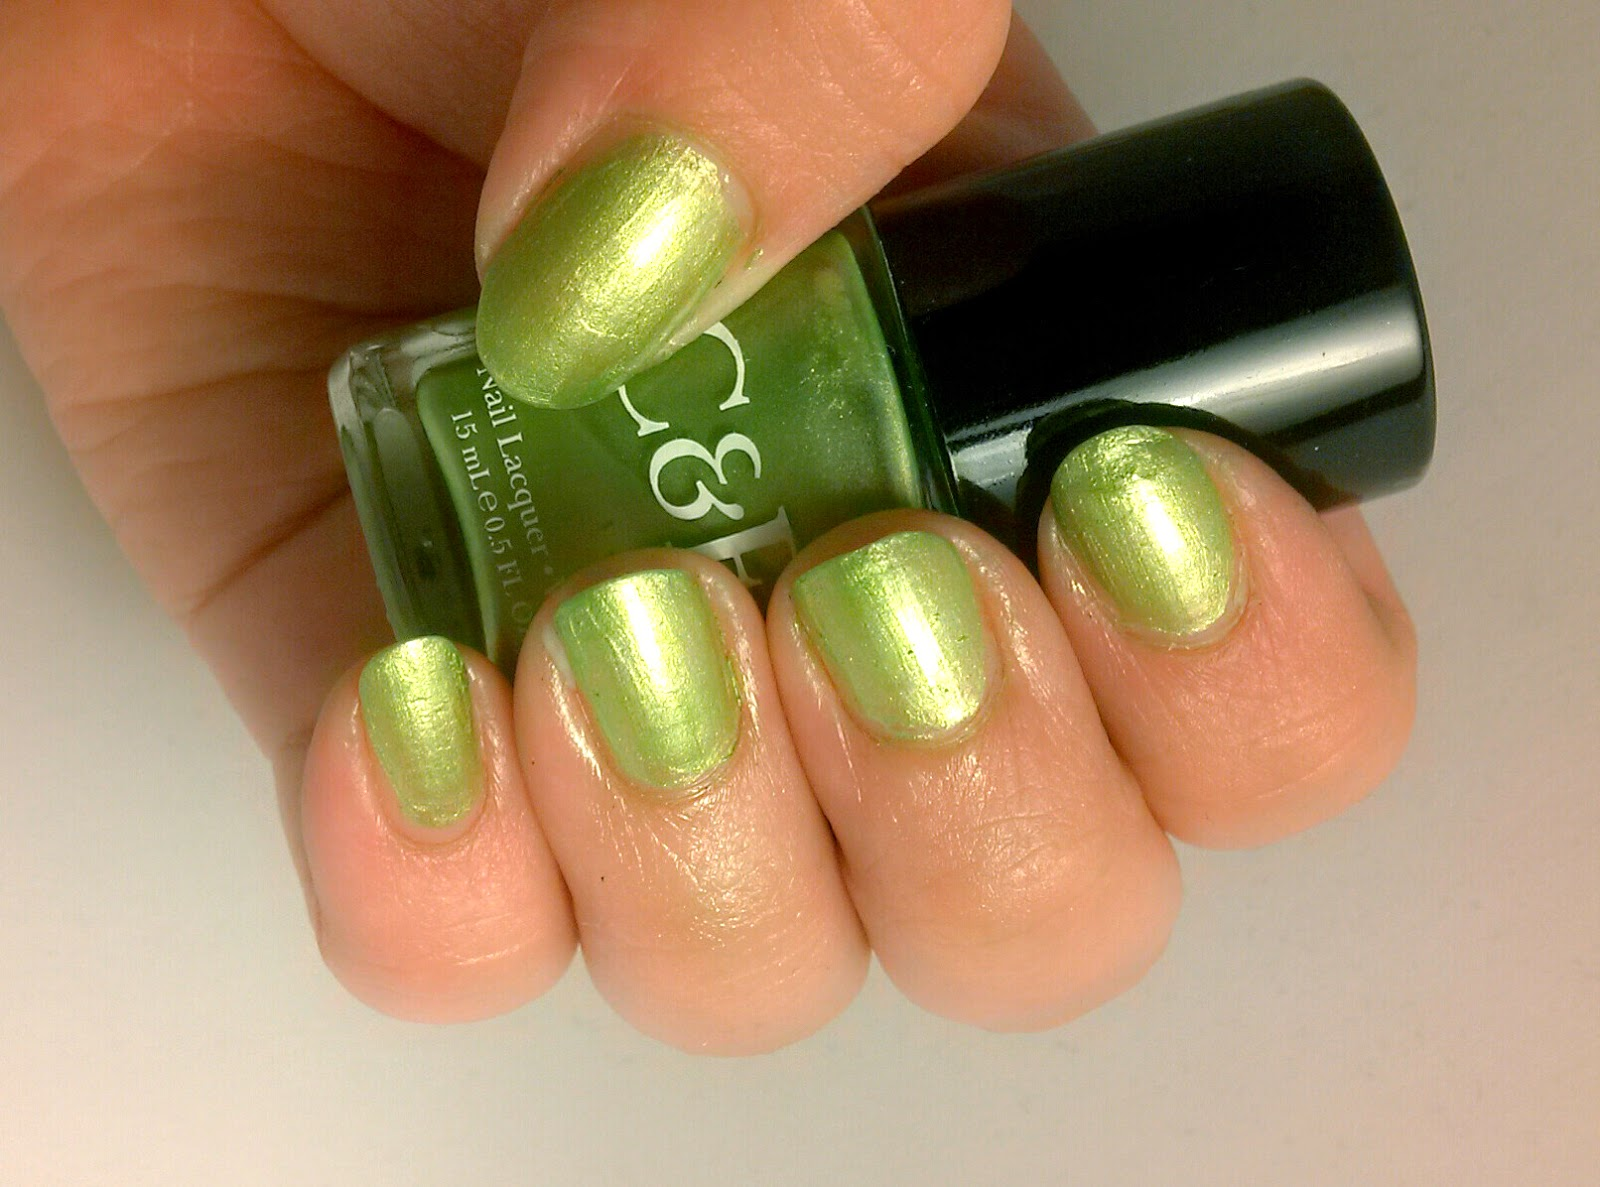 Nail Lacquer and Lip Sticks: Crabtree & Evelyn - Pistachio